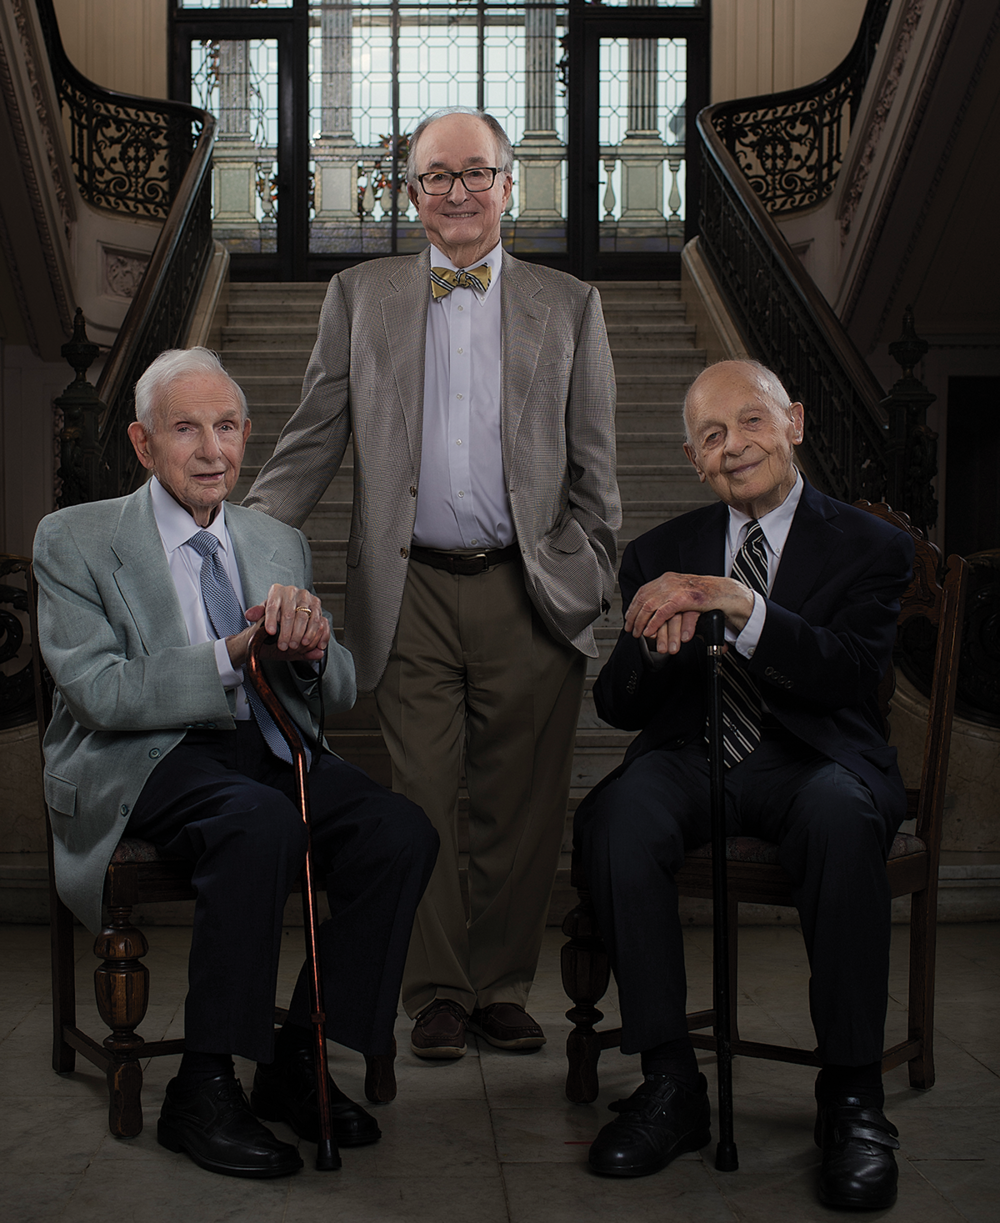 HONORARY CAMPAIGN CHAIRS - The #MakingAMuseumKC fundraising initiative is led by these three close friends and colleagues, who have lived in and supported Kansas City for more than 40 years.World War II veterans who are dedicated to arts, history, culture, education, healthcare, and entrepreneurship in Kansas City, Mr. Bill Dunn, Sr., Mr. Edward Matheny, and Mr. Henry Bloch are working with the Board of Directors of the Kansas City Museum Foundation to strategically develop #MakingAMuseumKC and guide its priorities.